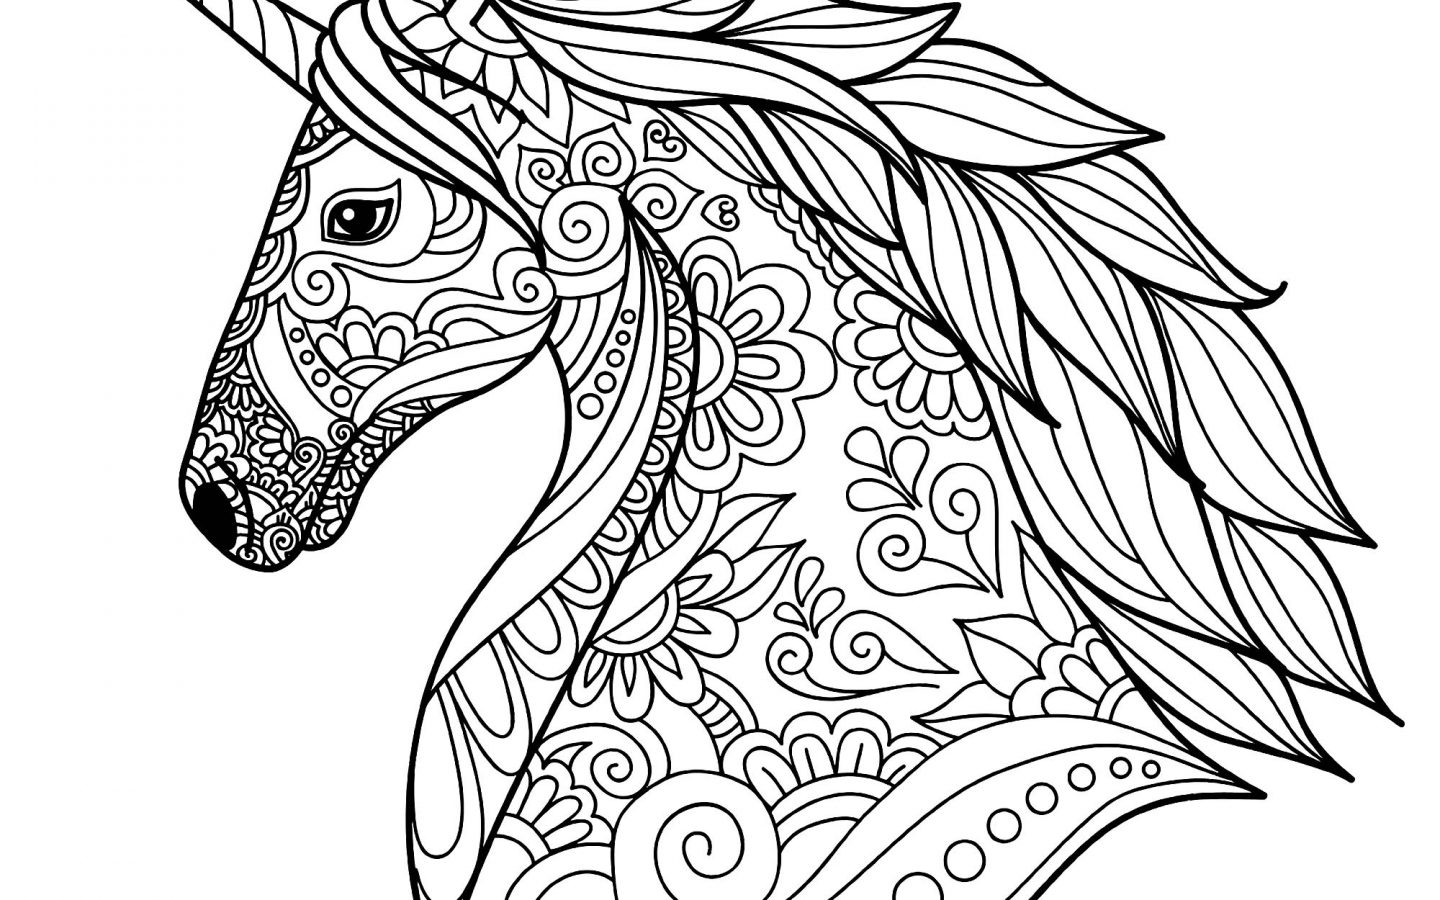 1440x900 Stirringcorn For Coloring Book App Download Pdf Clipart Pic Images